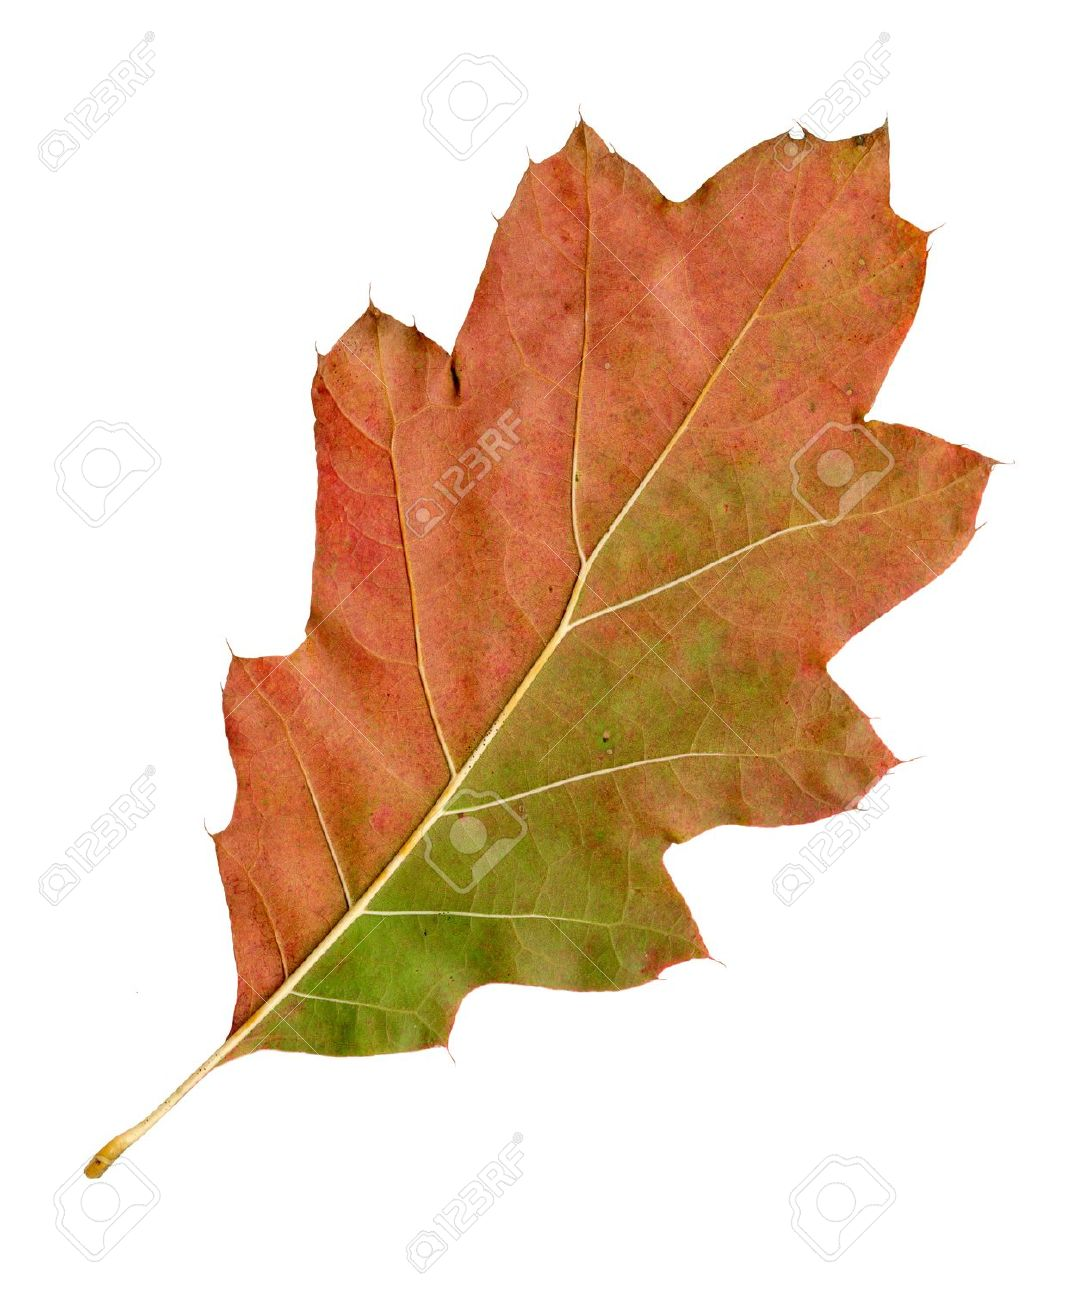 Autumn leaves of a red oak, under-surface, quercus rubra Standard-Bild - 9886439